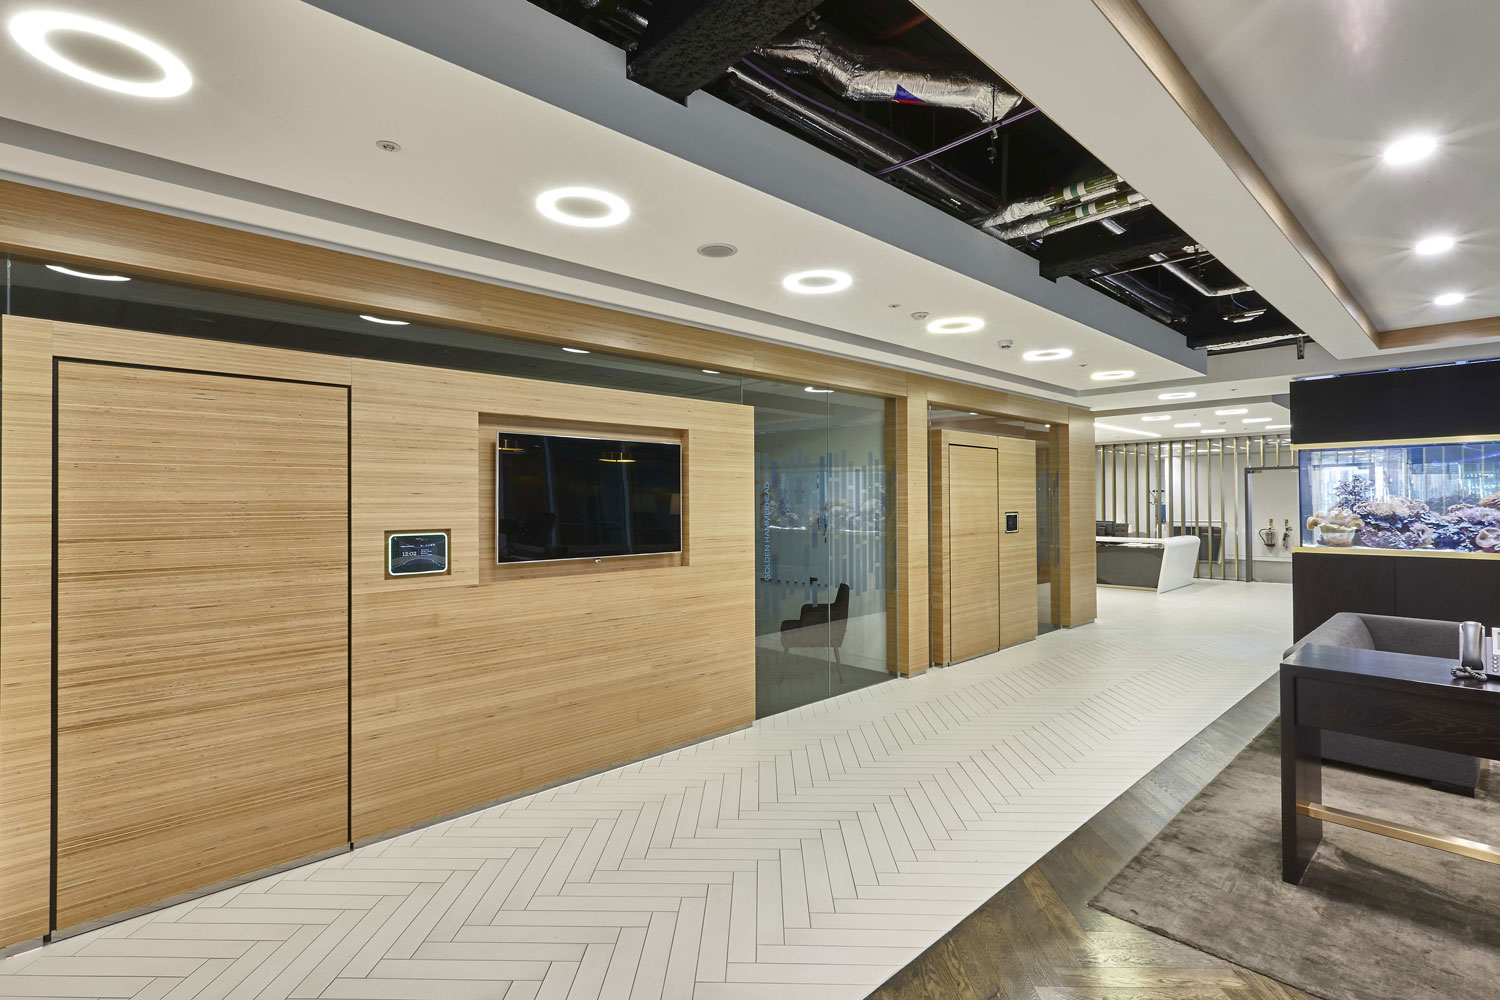 Mako Derivatives, Appold Street, Broadgate, London | Interiors Photographer